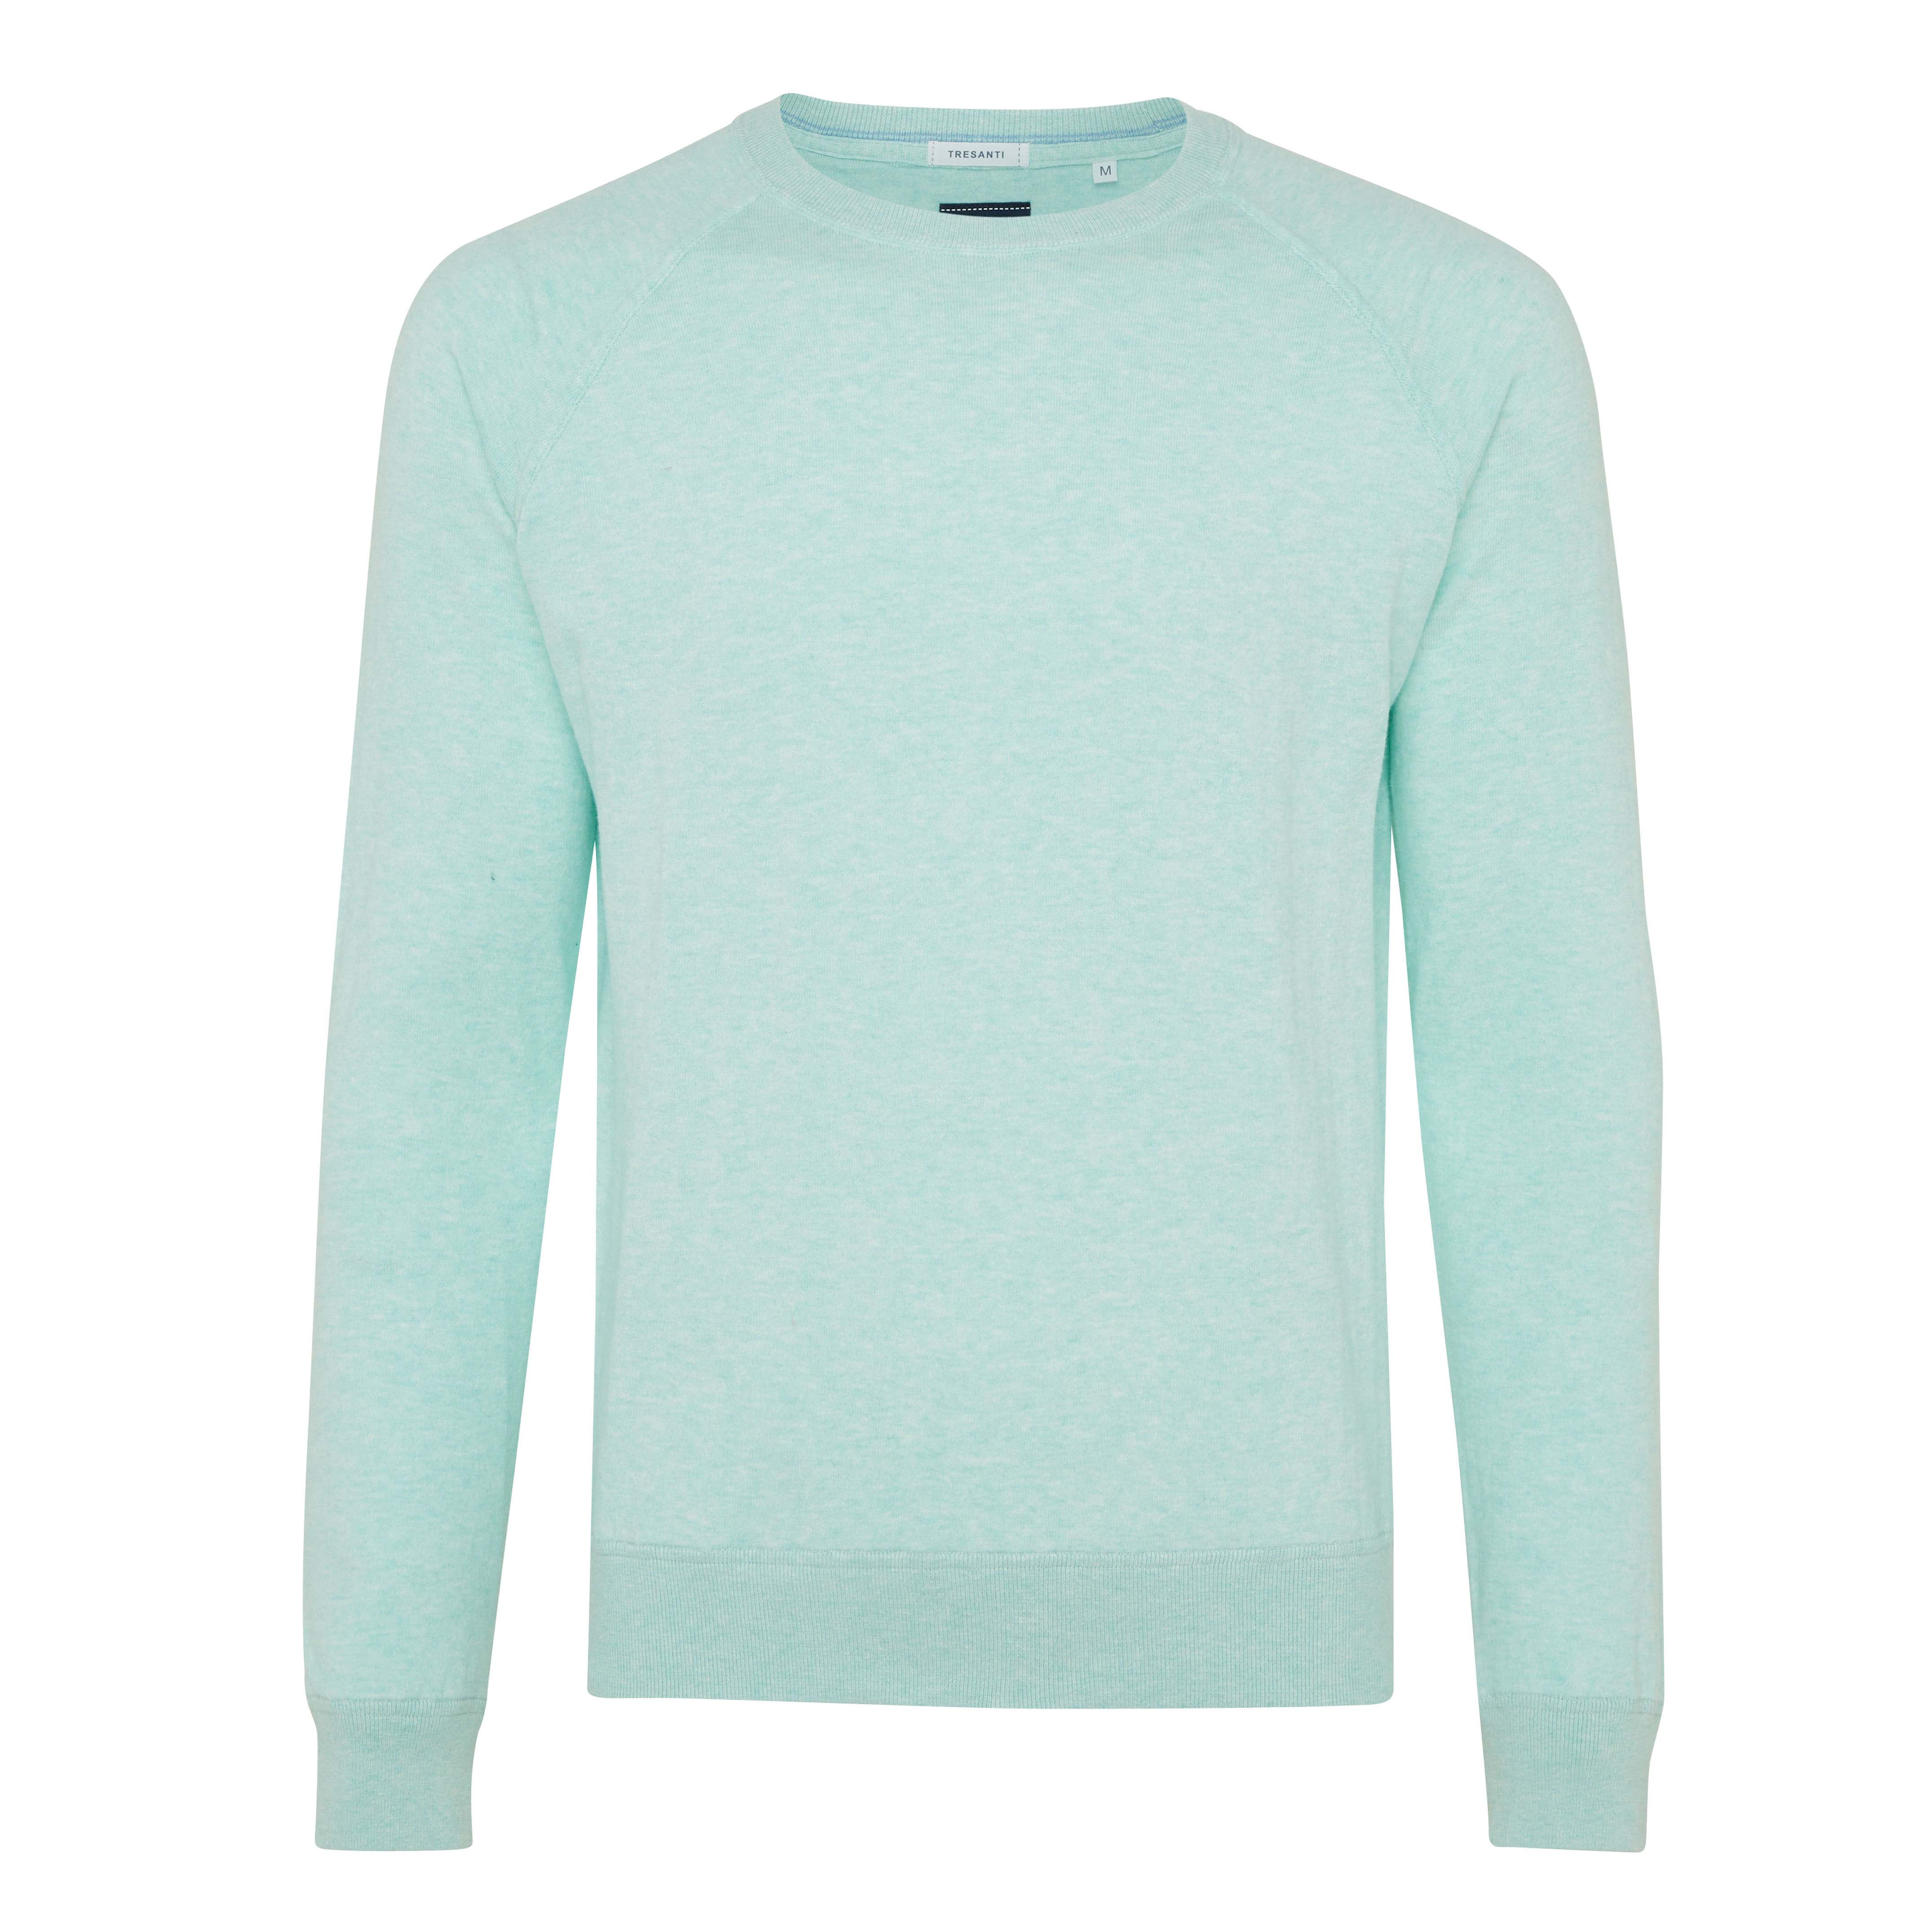 Ties | Pullover long sleeve mint green